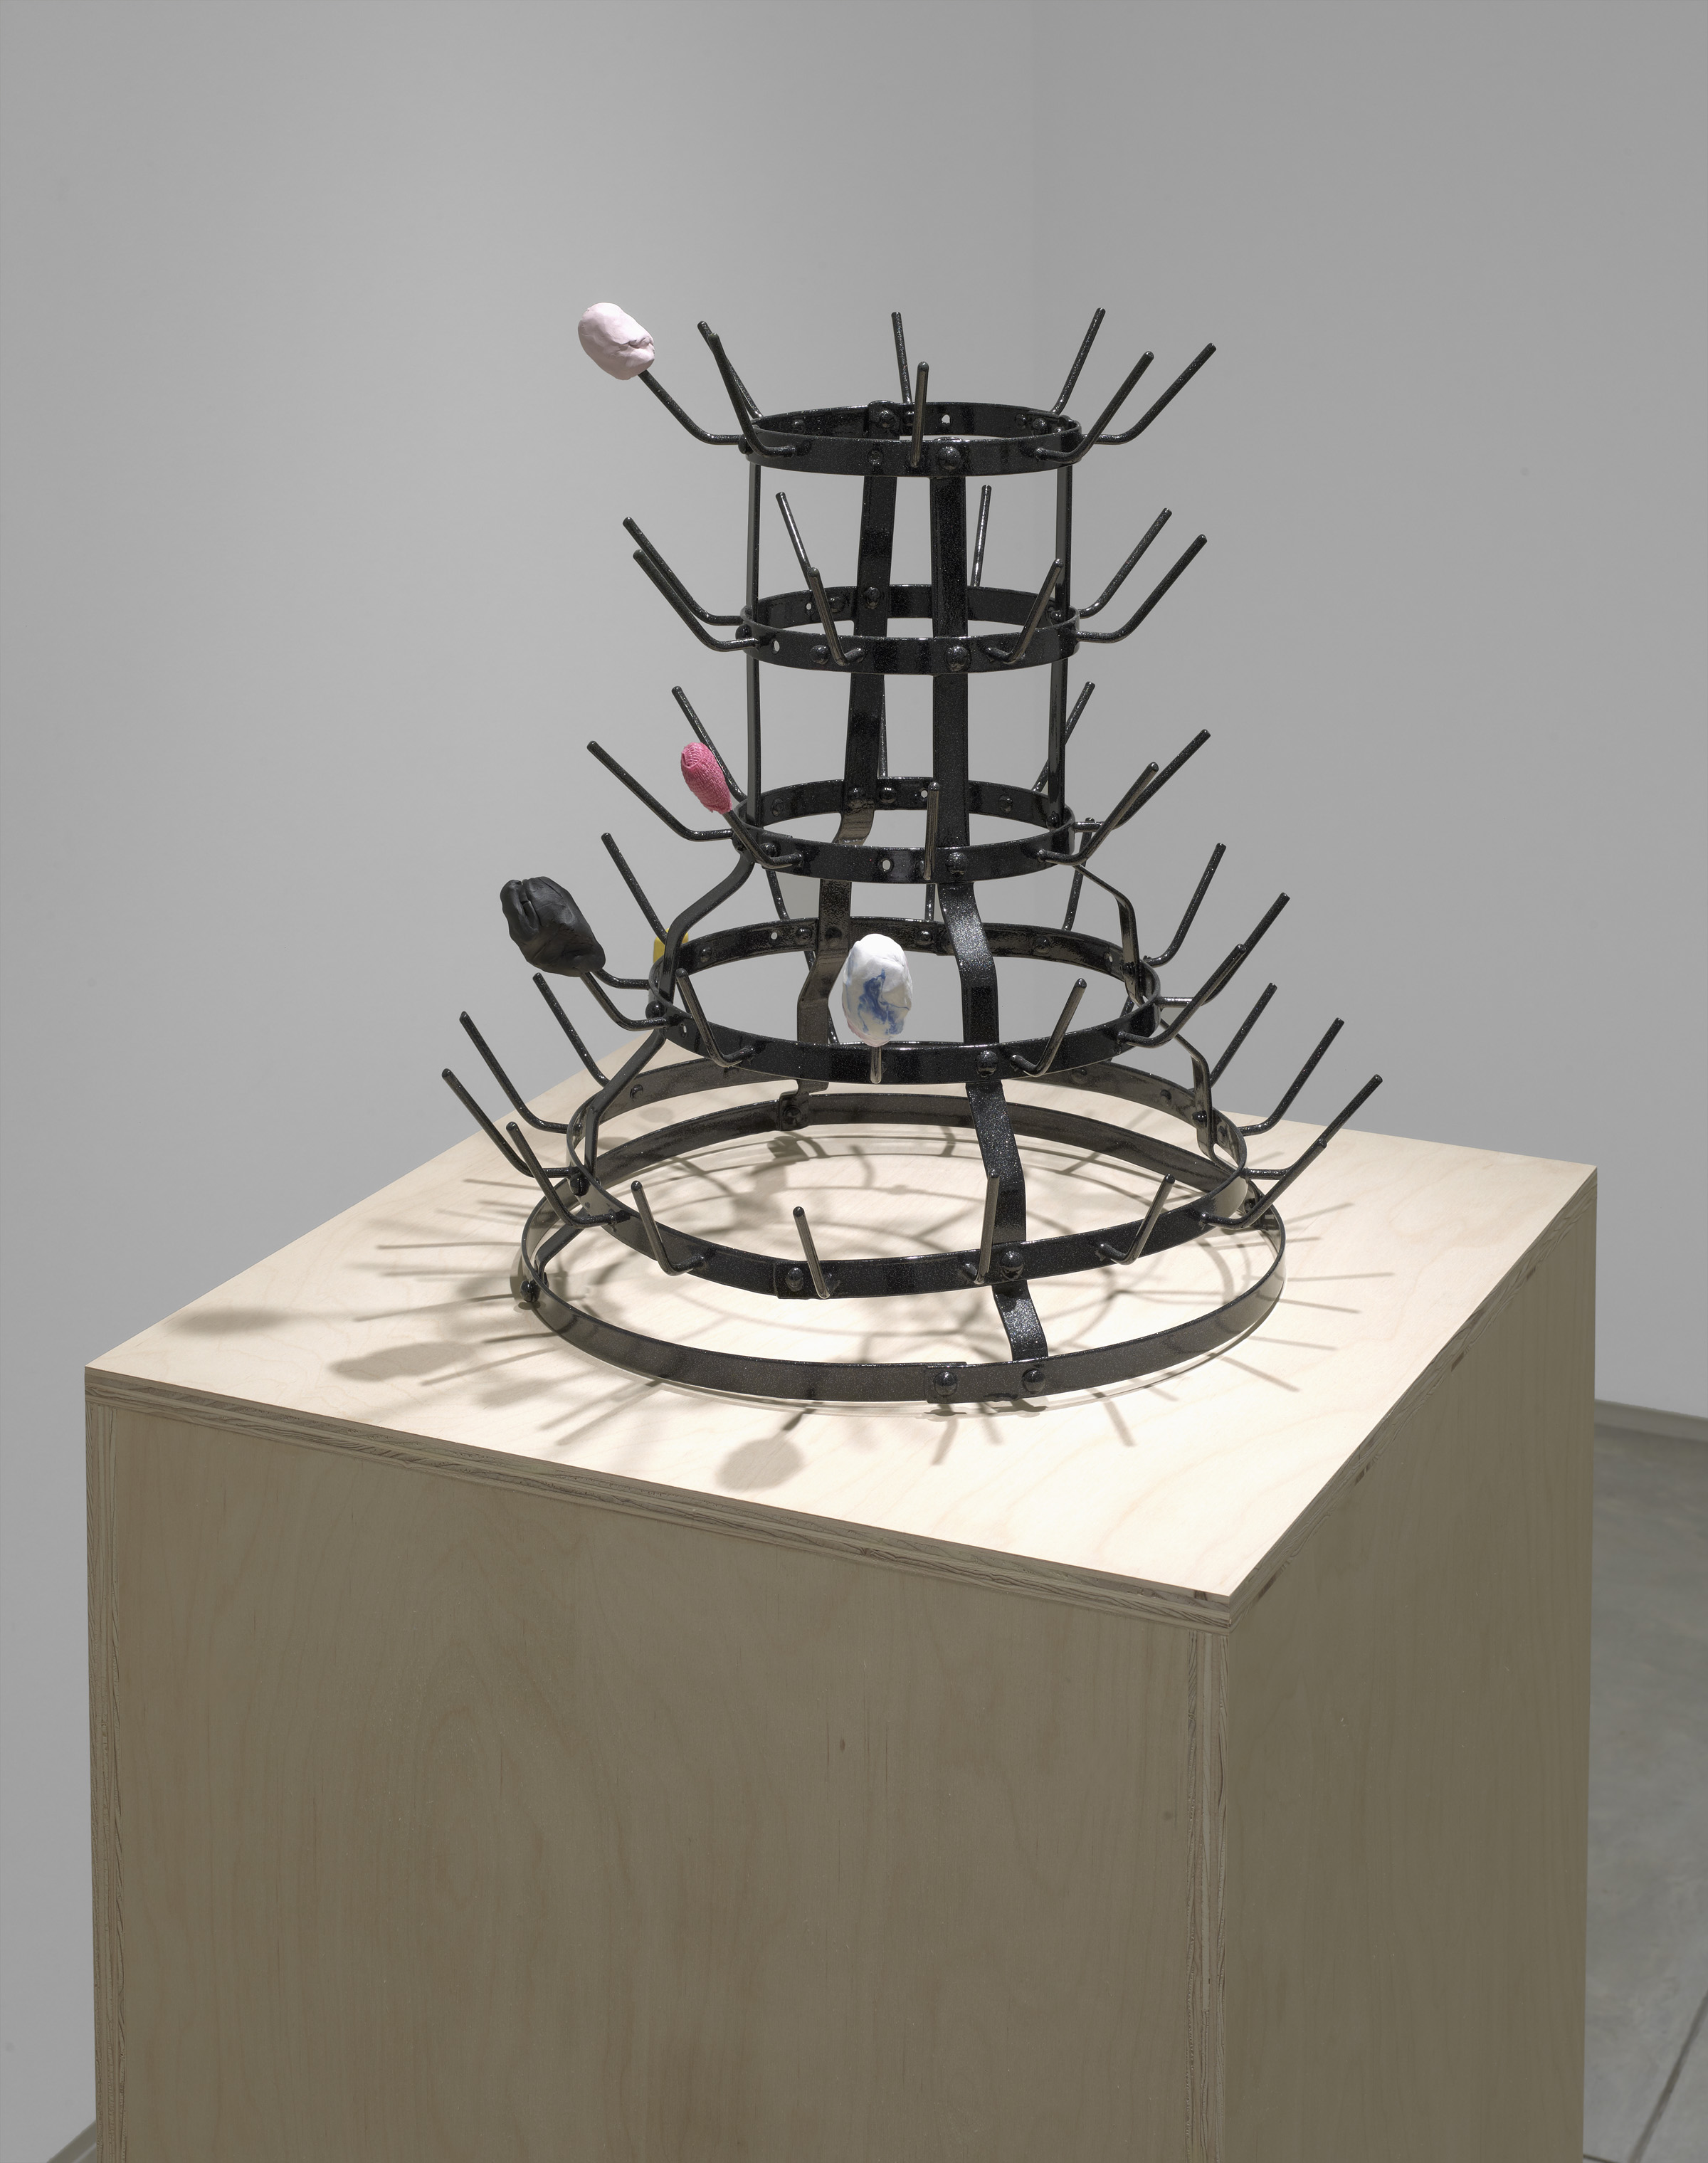 Katrina Moorhead, Trying to describe the way that space wraps itself around an object, antique bottle rack, powder coating, plasticine, bandage, 66 x 19 x 20 inches